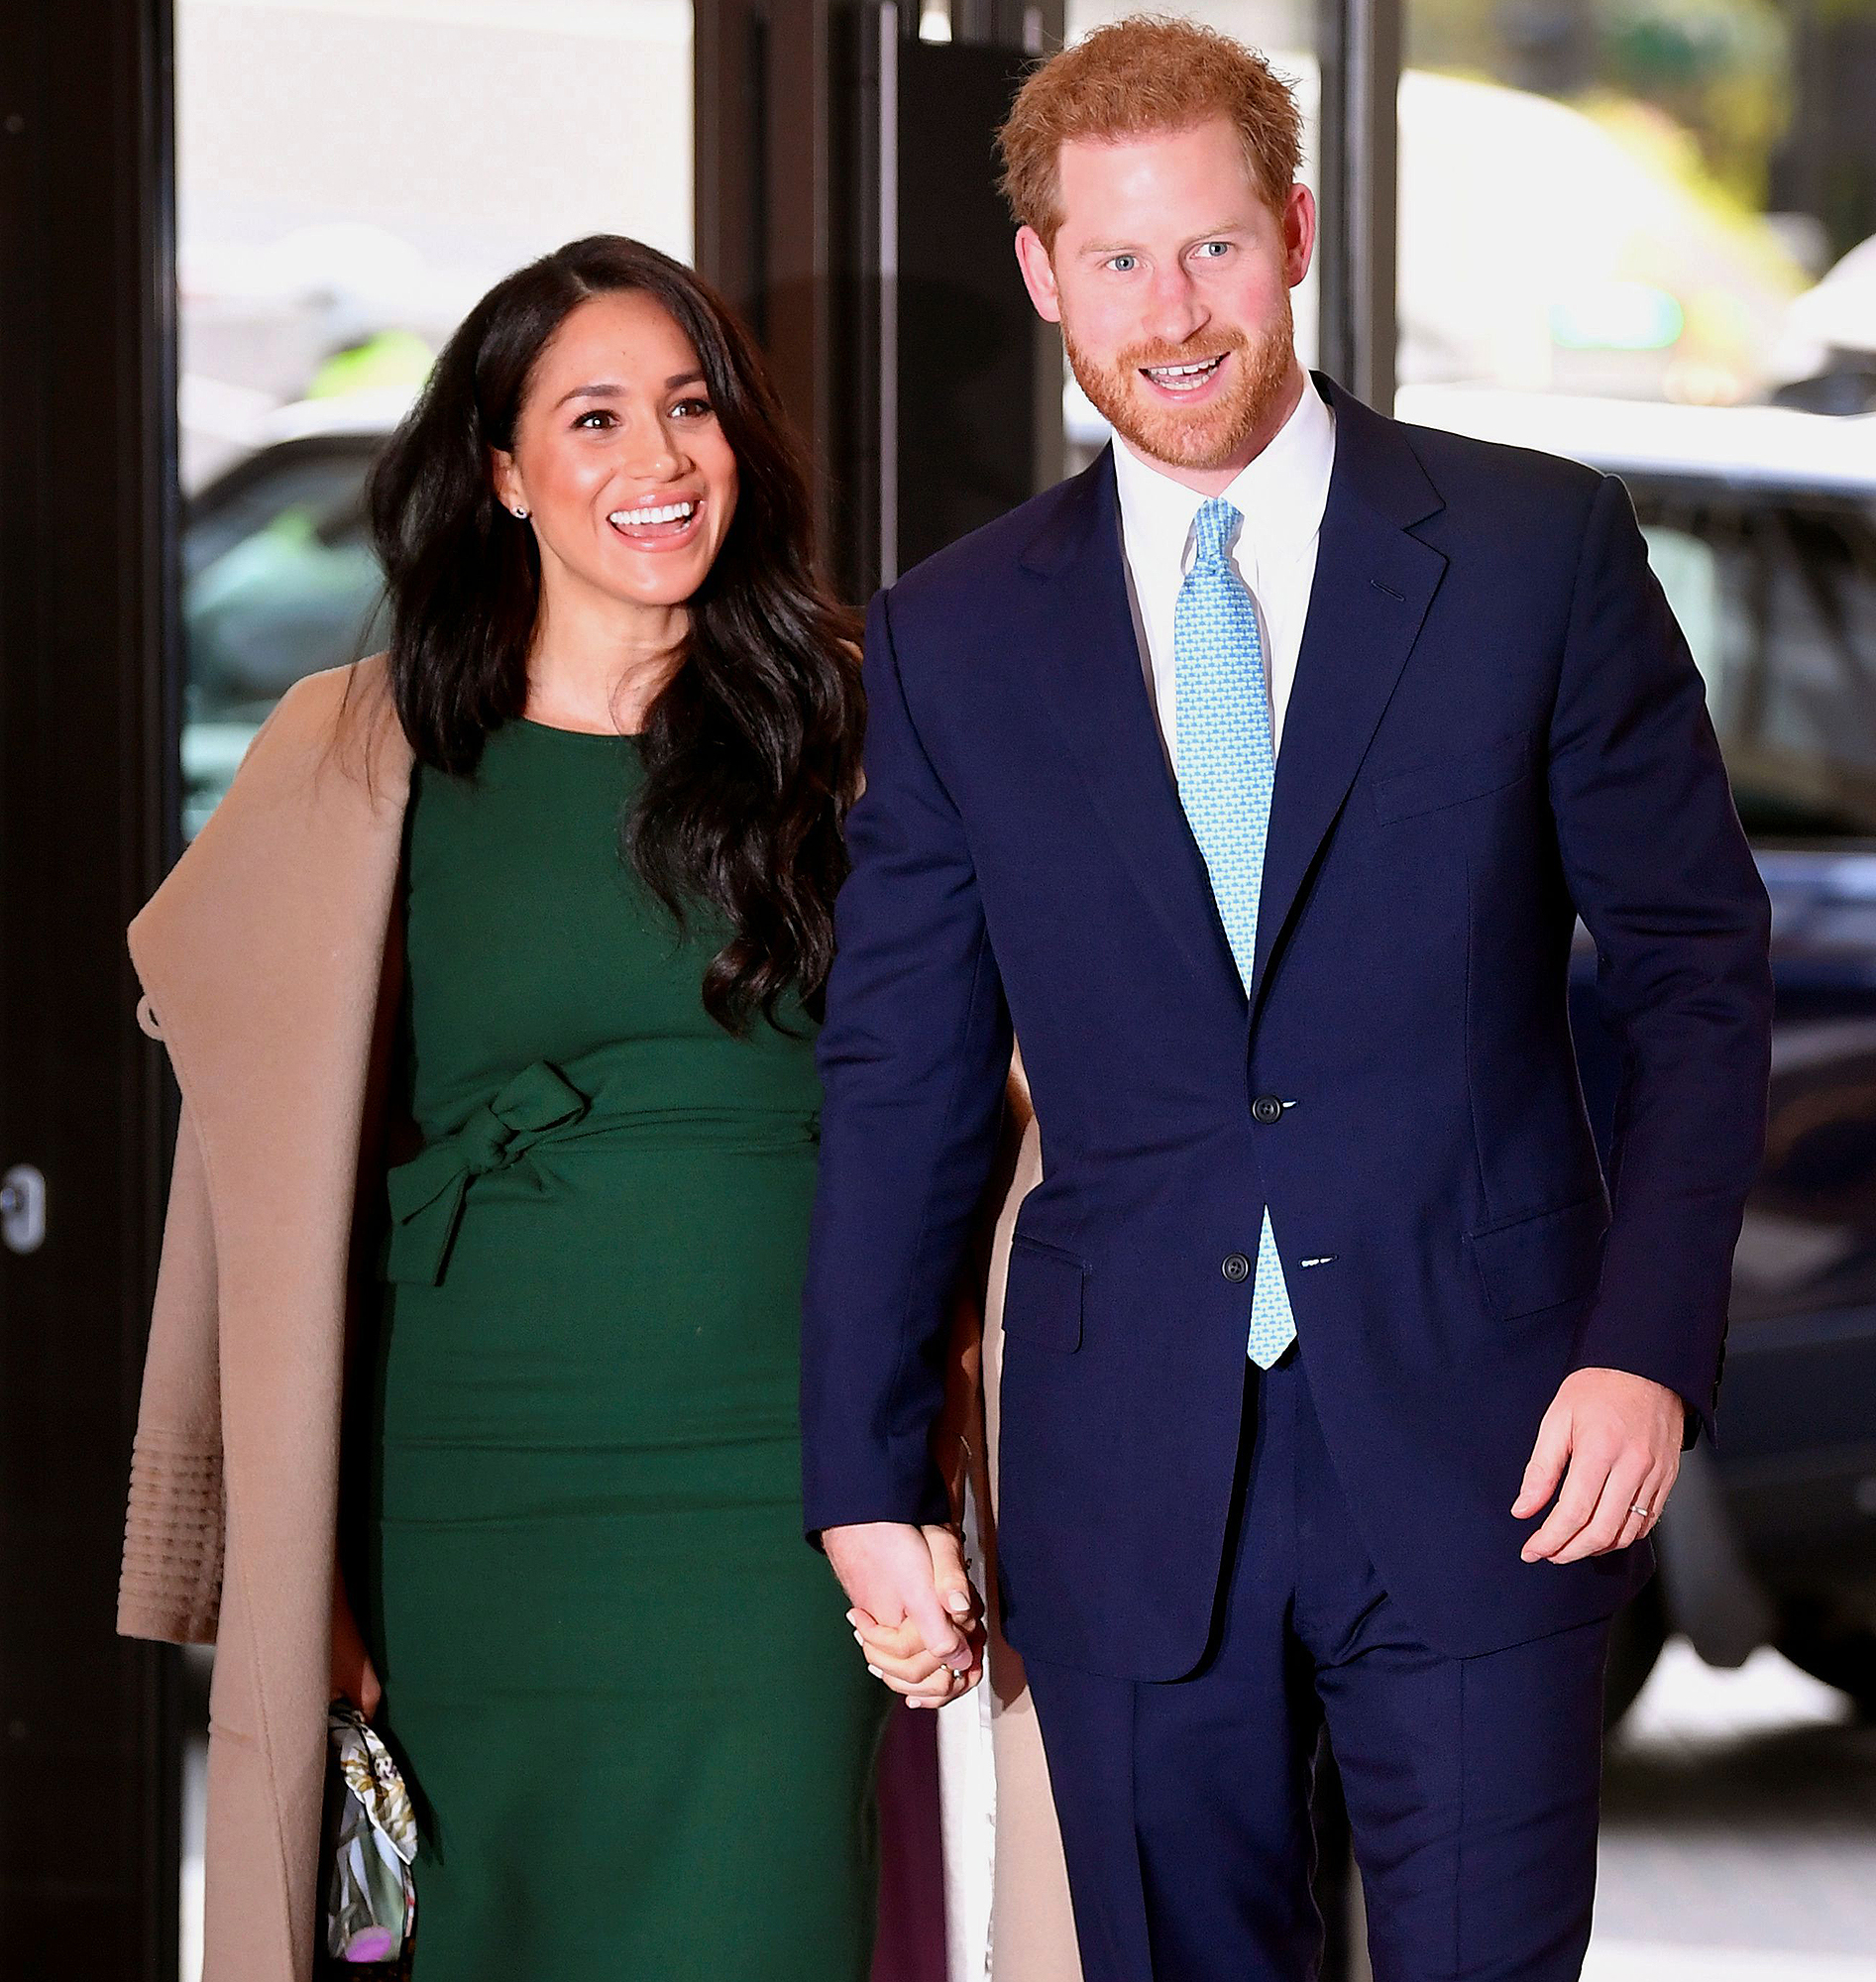 Meghan Markle and Prince Harry's Daughter's Official Birth Announcement Is Revealed